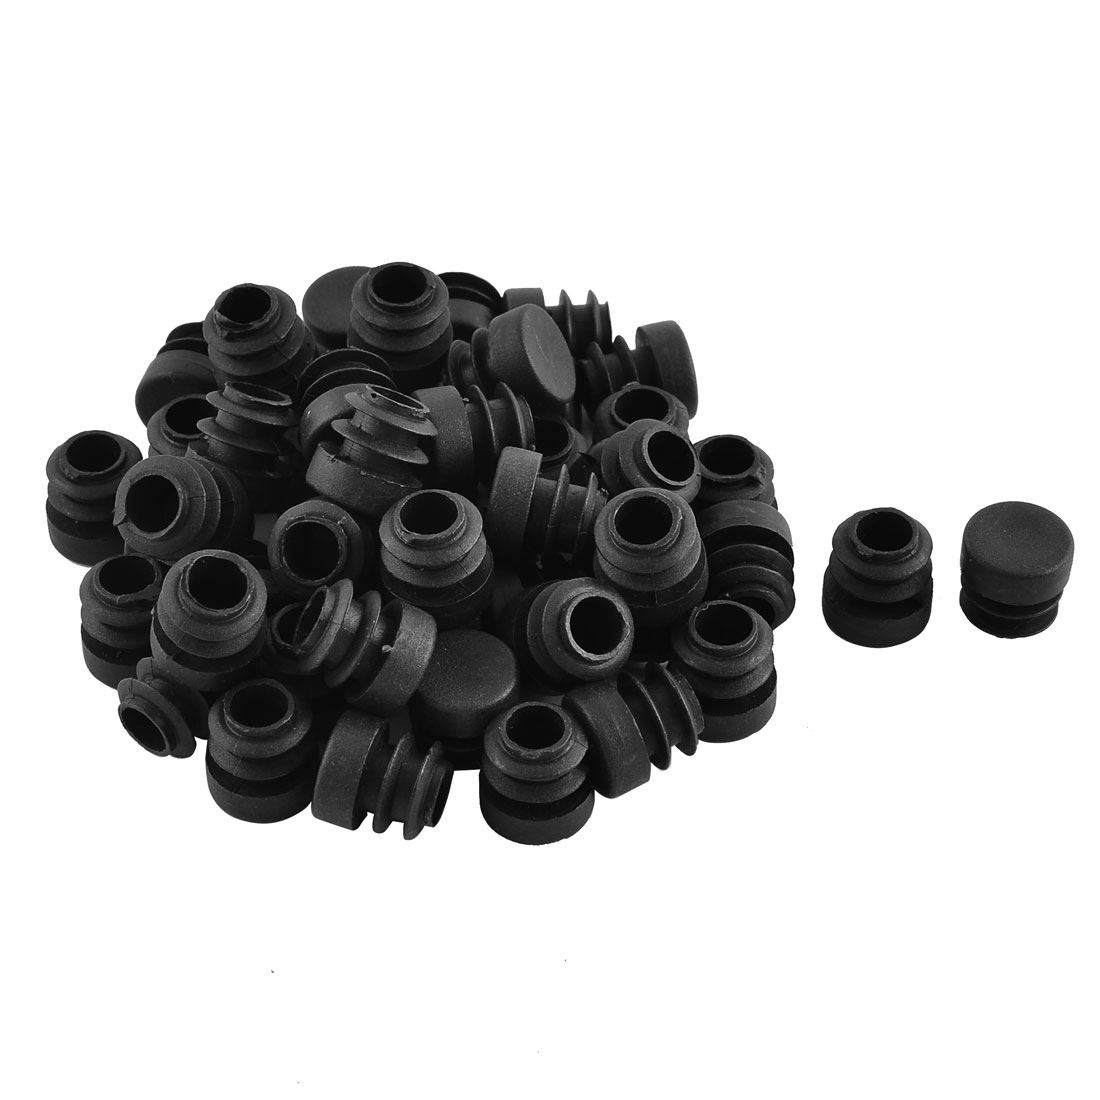 Home Plastic Round Shaped Table Chair Legs Tube Insert Black 16mm Diameter 50 Pcs